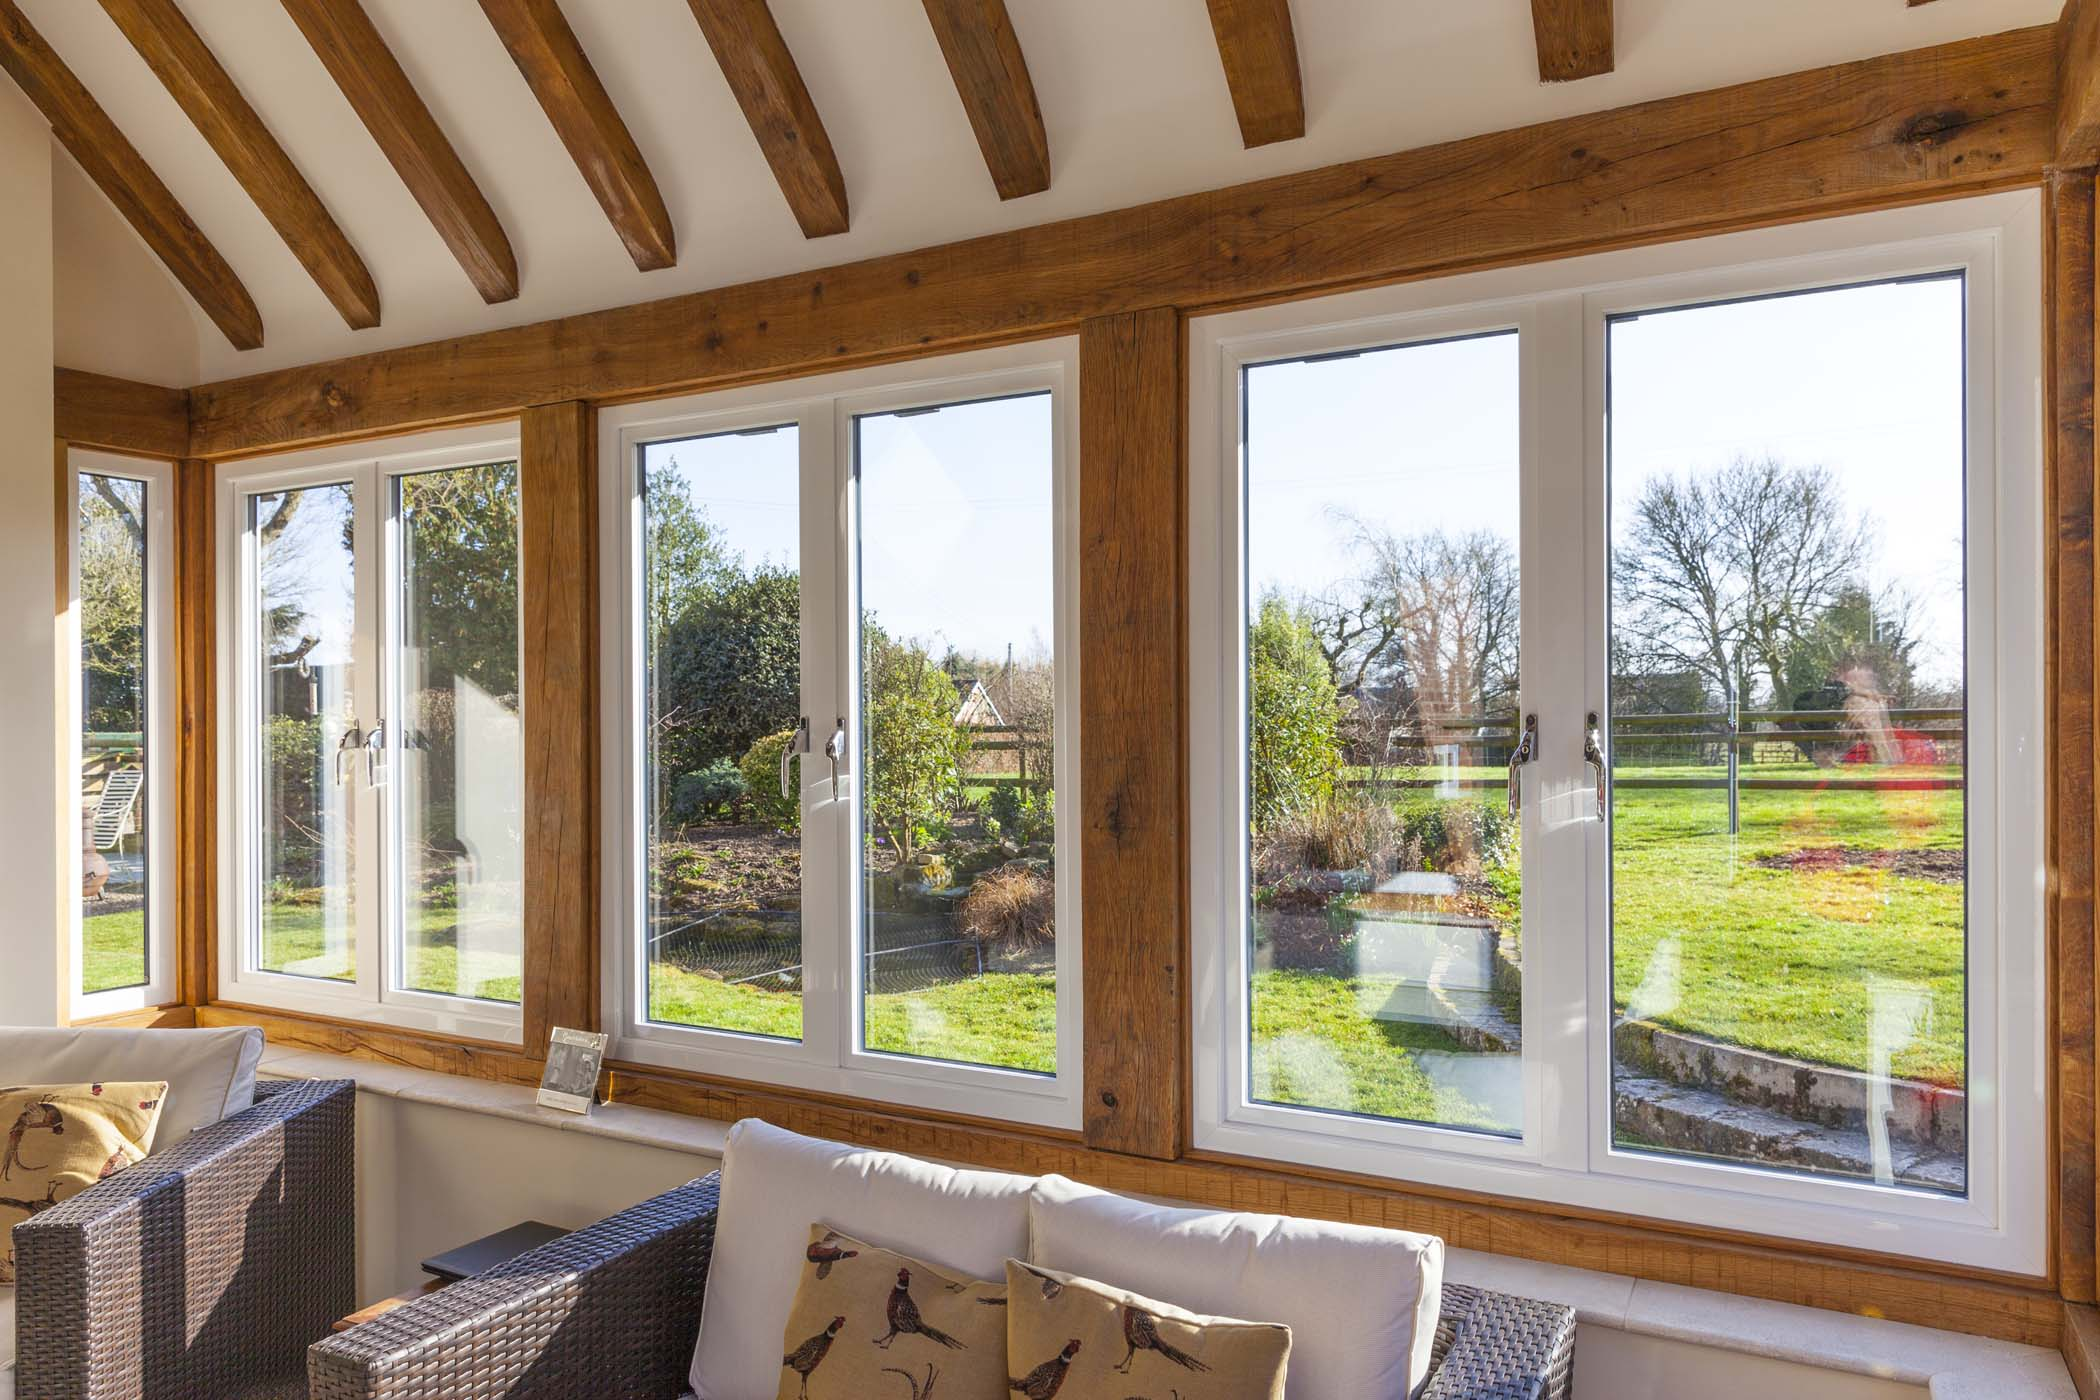 Sapa aluminium Crown Casement windows shown from the inside of a residential project